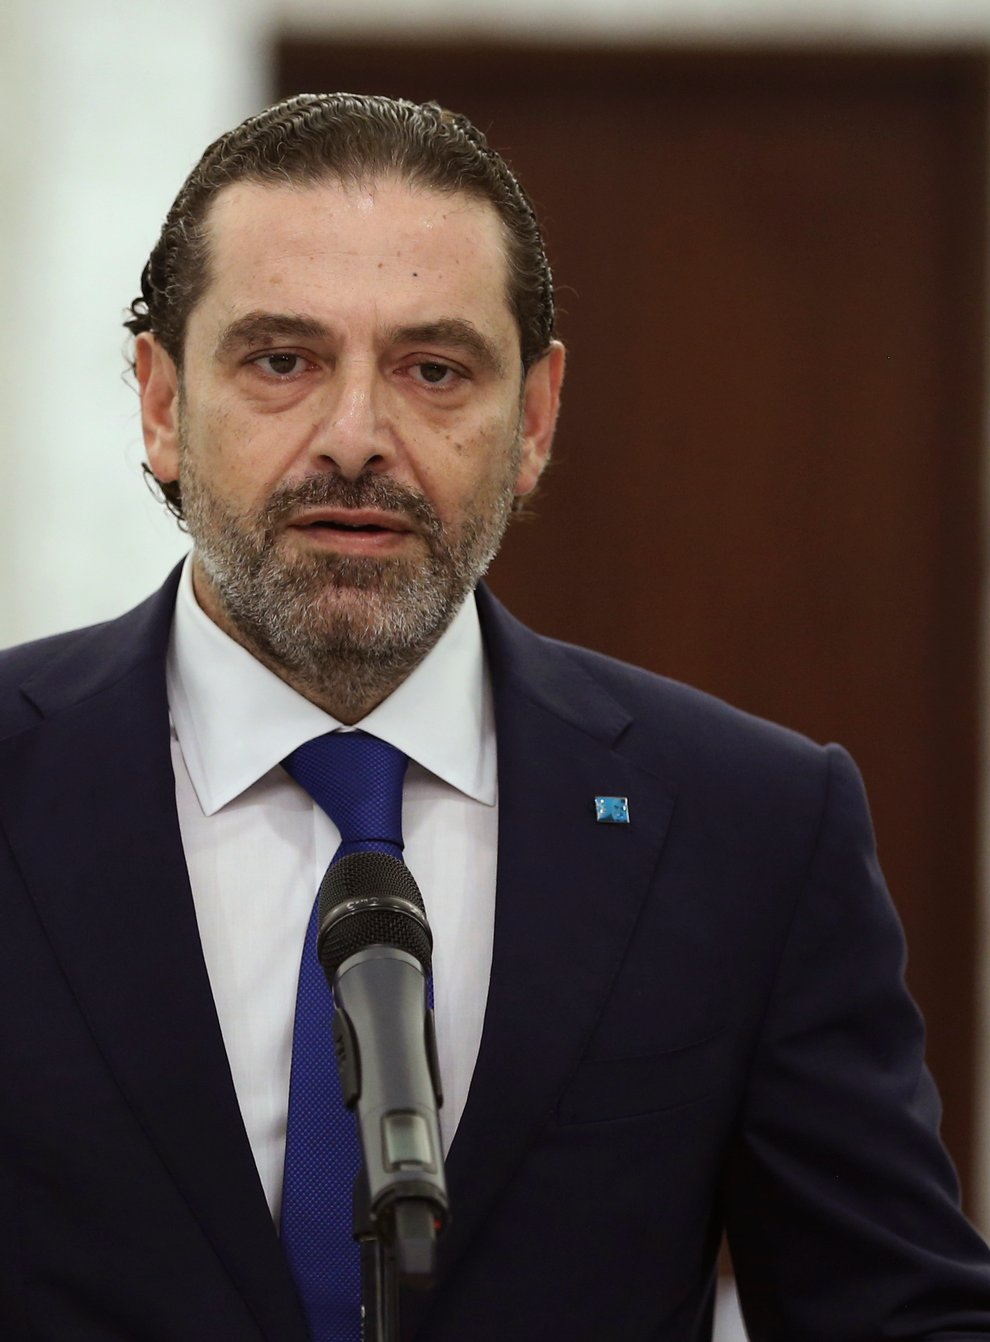 Lebanon's prime minister-designate Saad Hariri after his meeting with President Michel Aoun